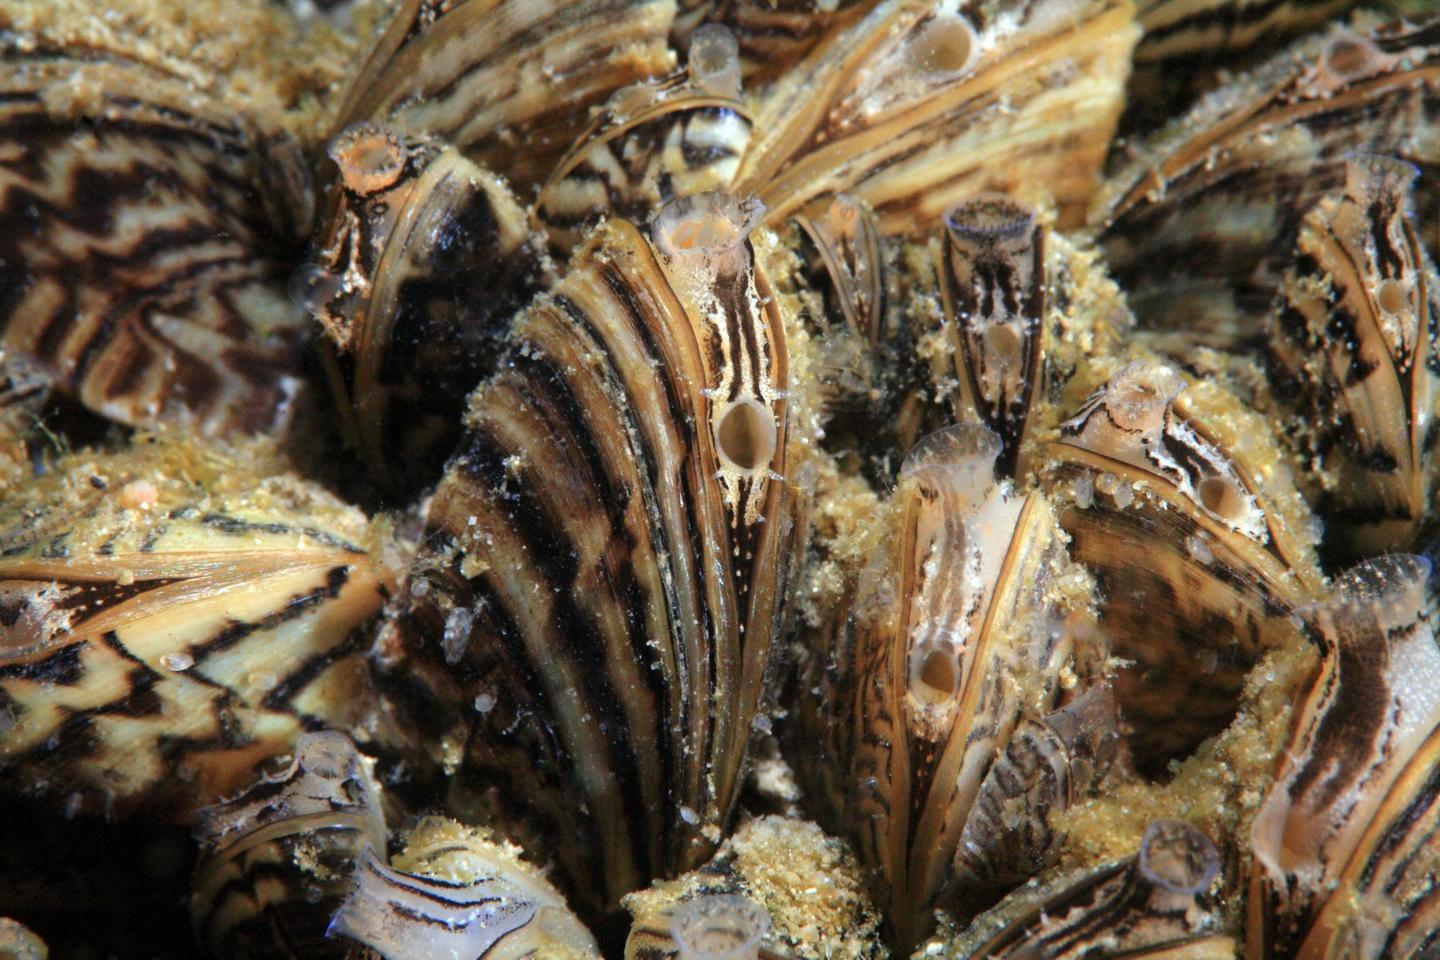 Originally native to Eastern Europe and Western Russia, zebra mussels arrived in North America's Great Lakes by traveling in the ballast water of ships.